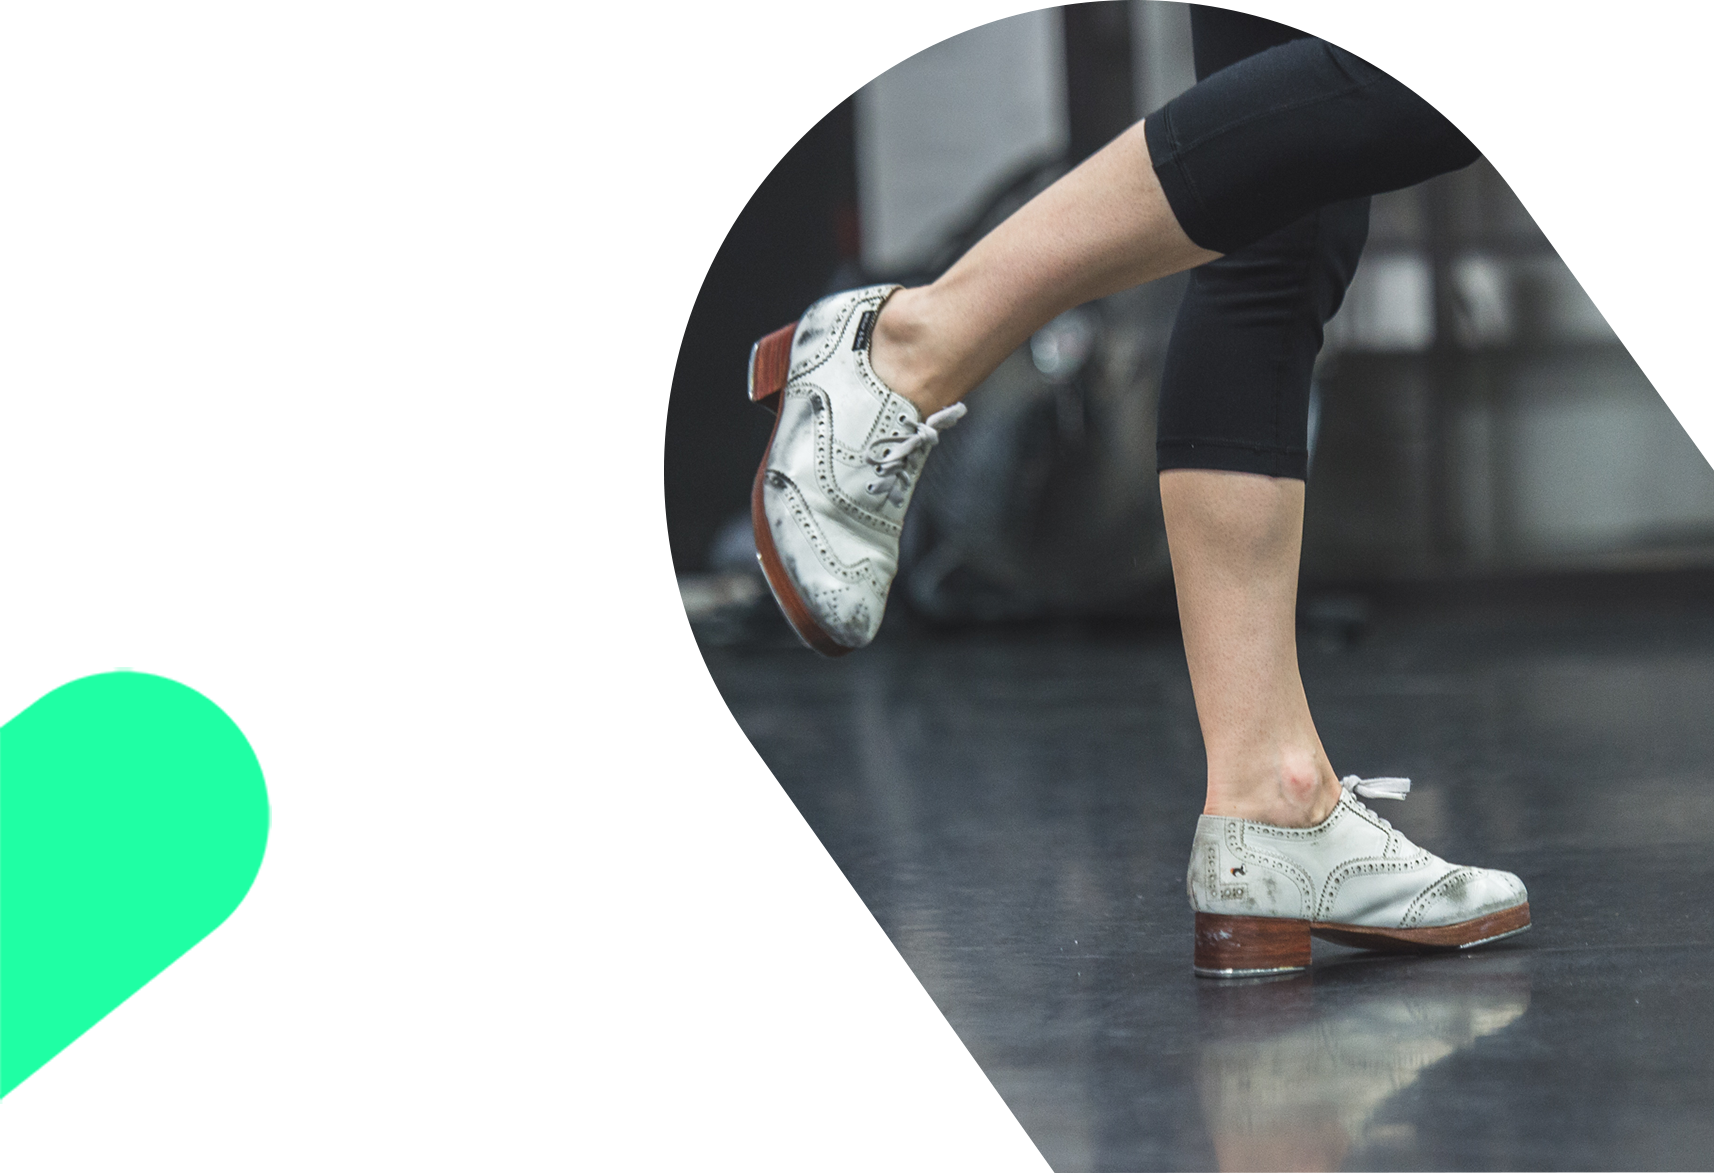 Tap - Courses for absolute beginners